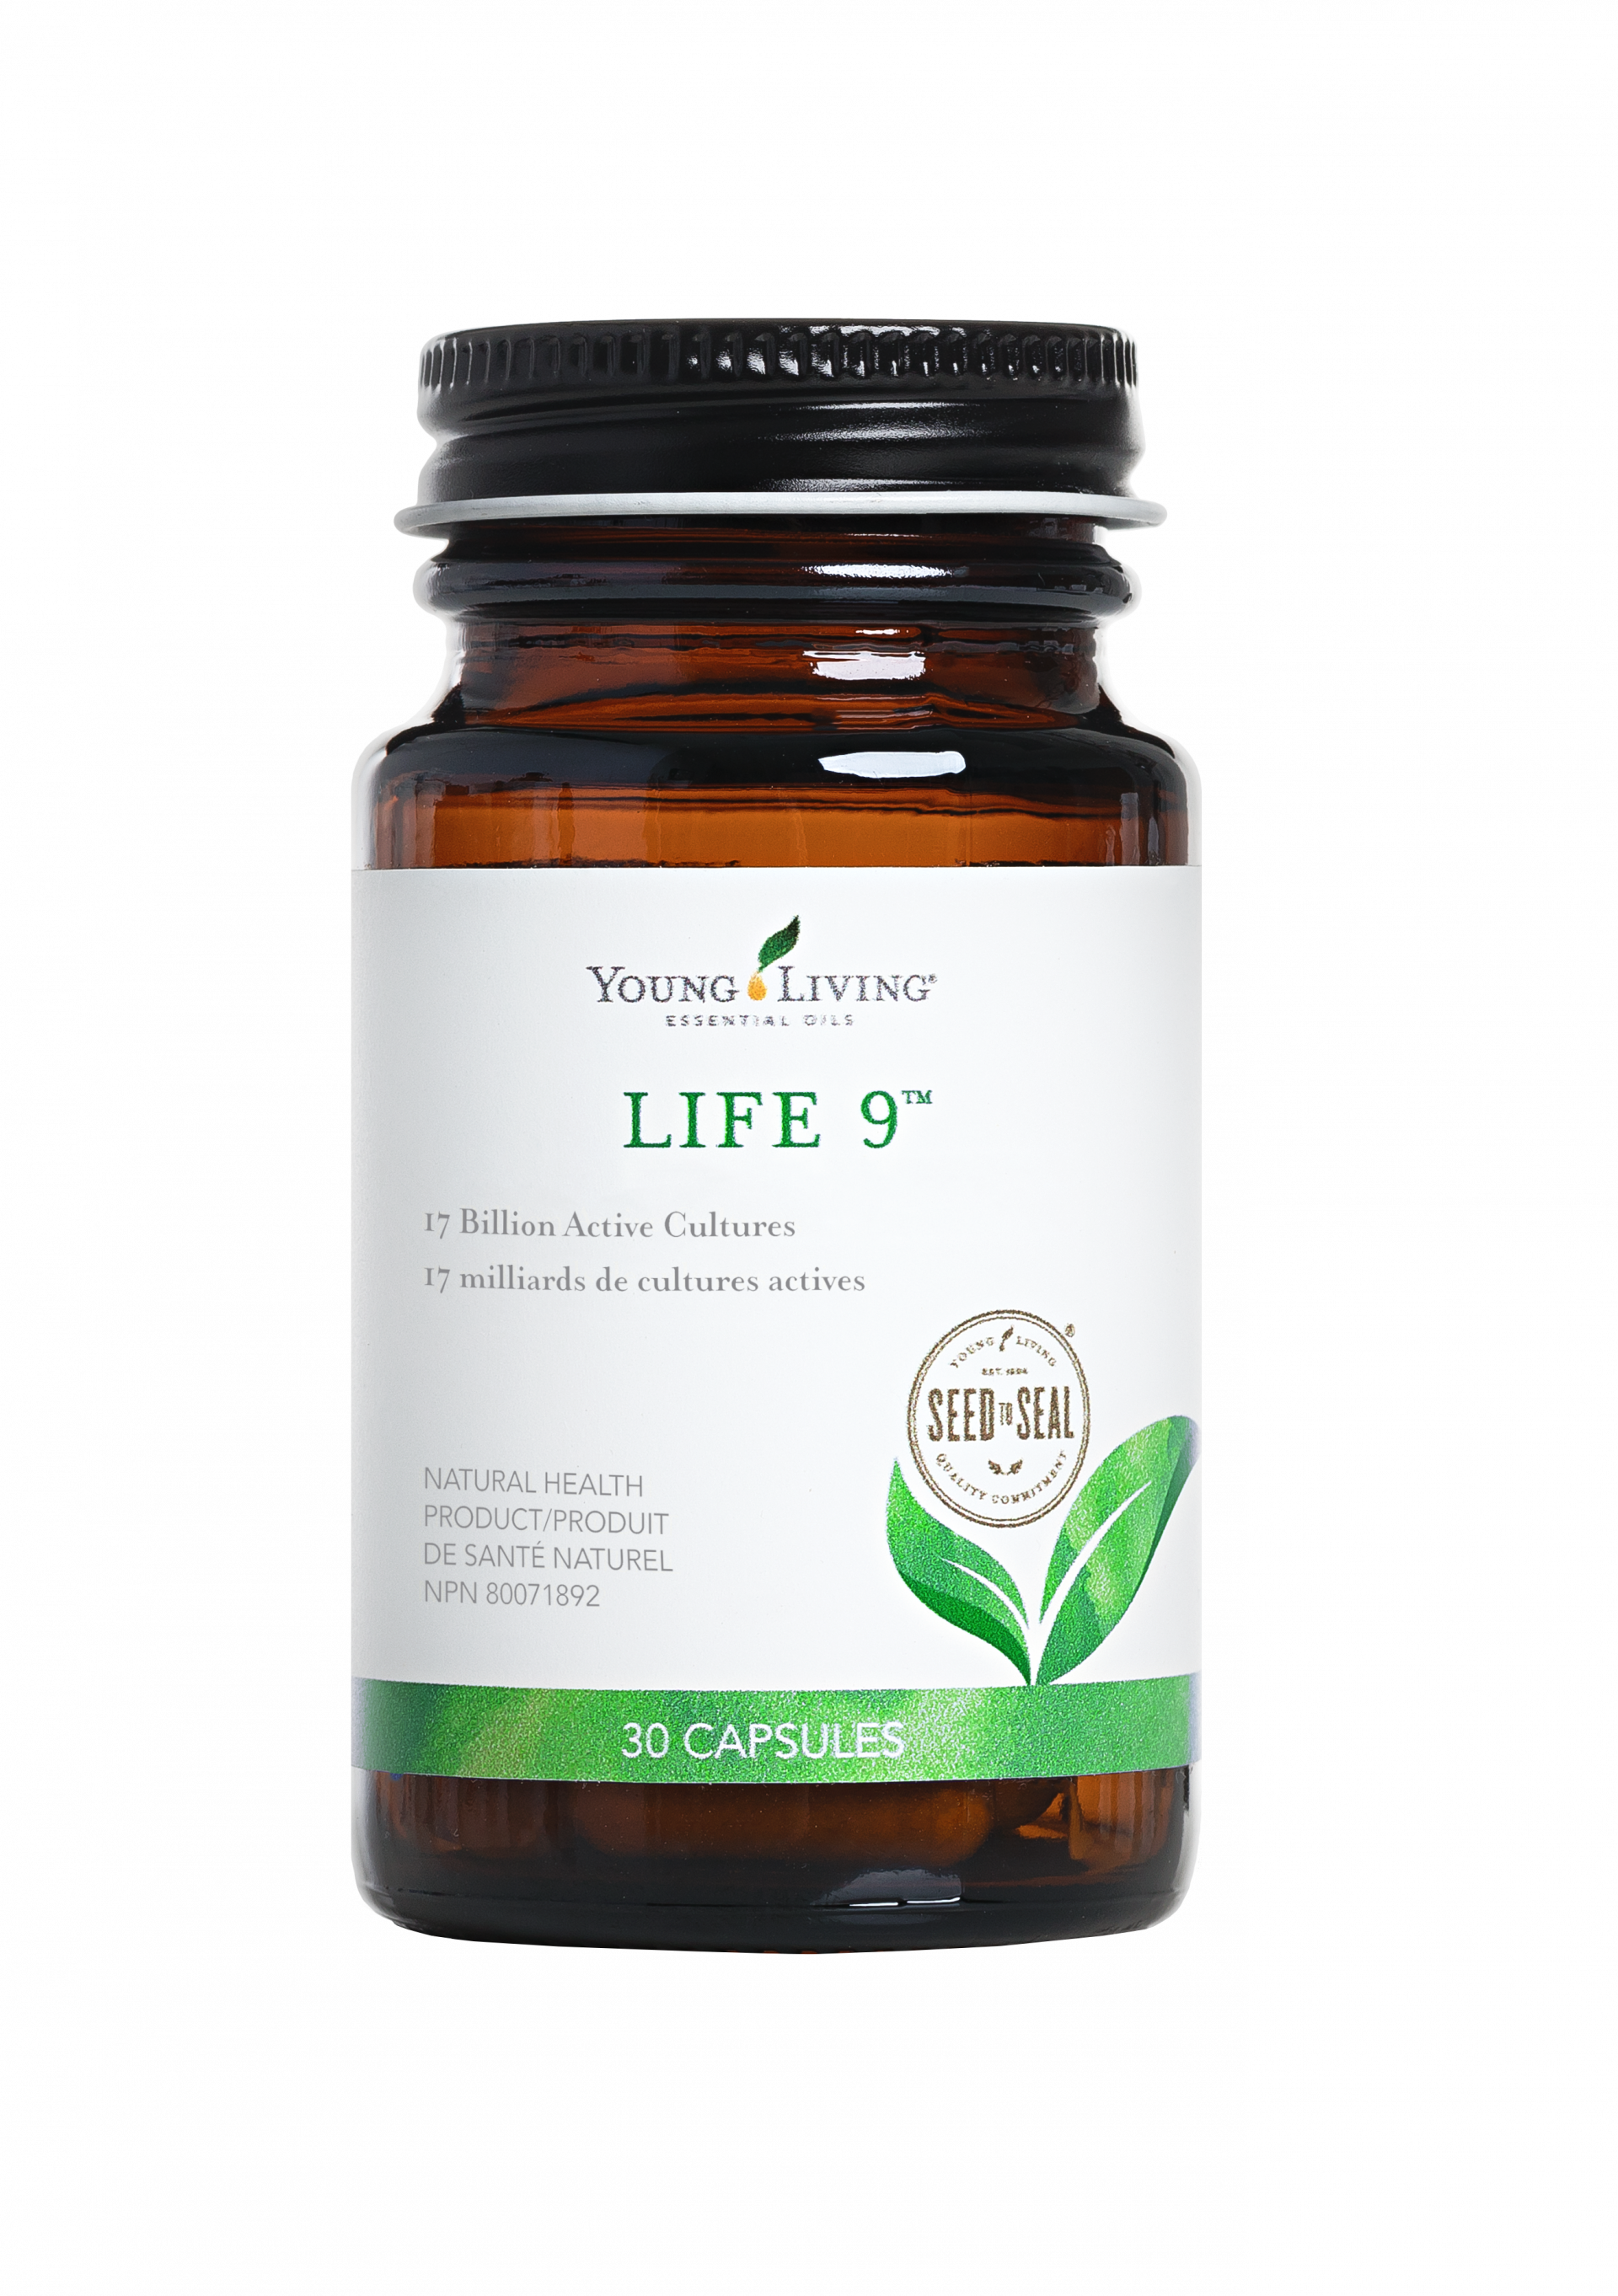 Life 9 Supplement